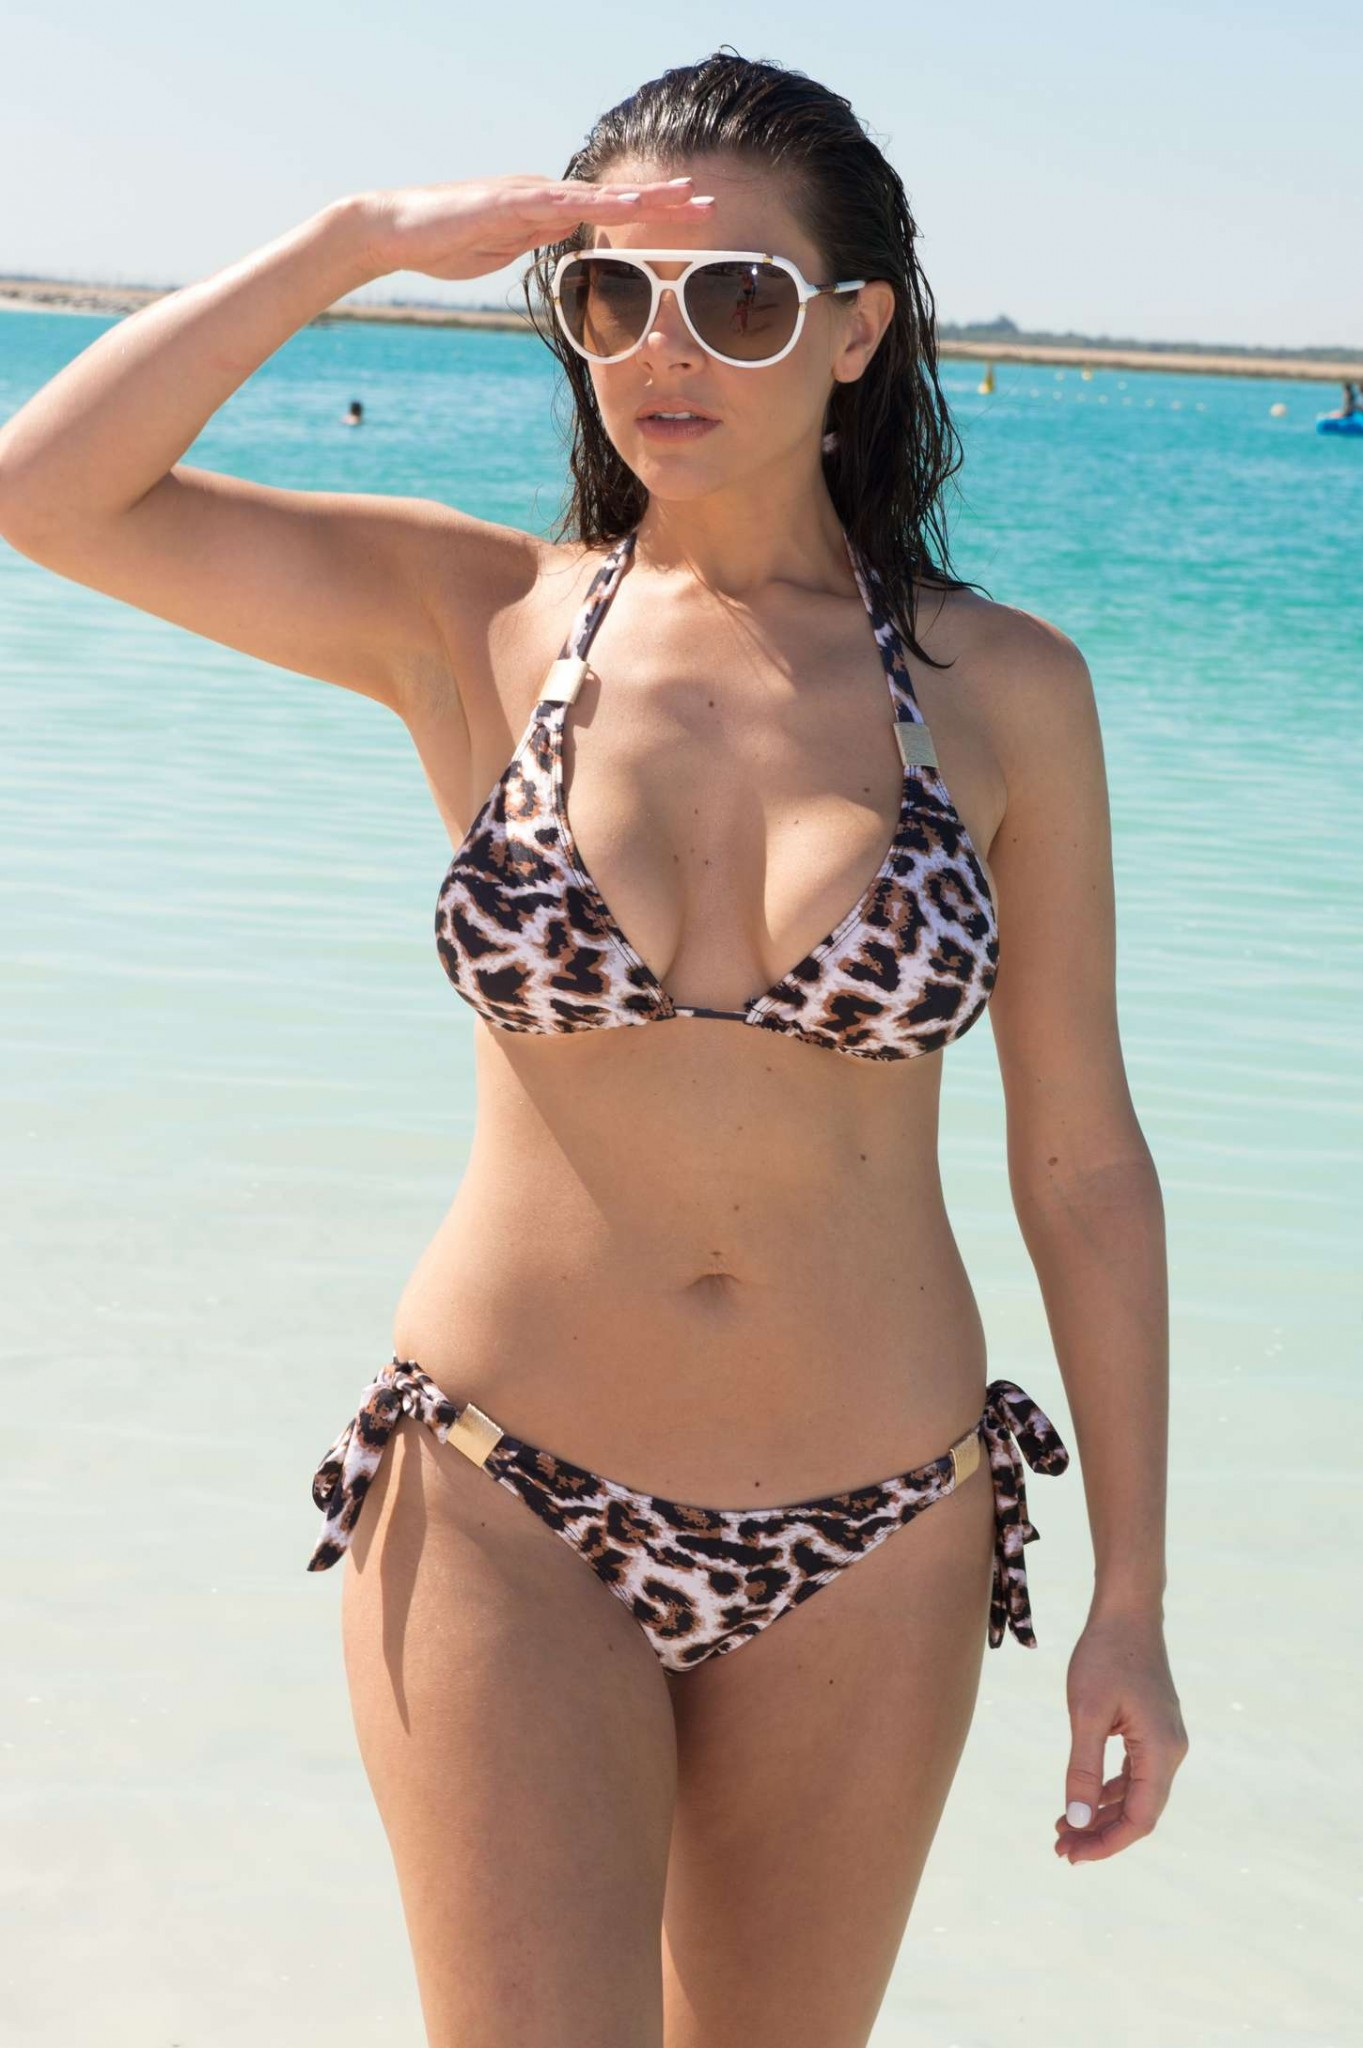 imogen-thomas-wearing-a-bikini-in-dubai-11